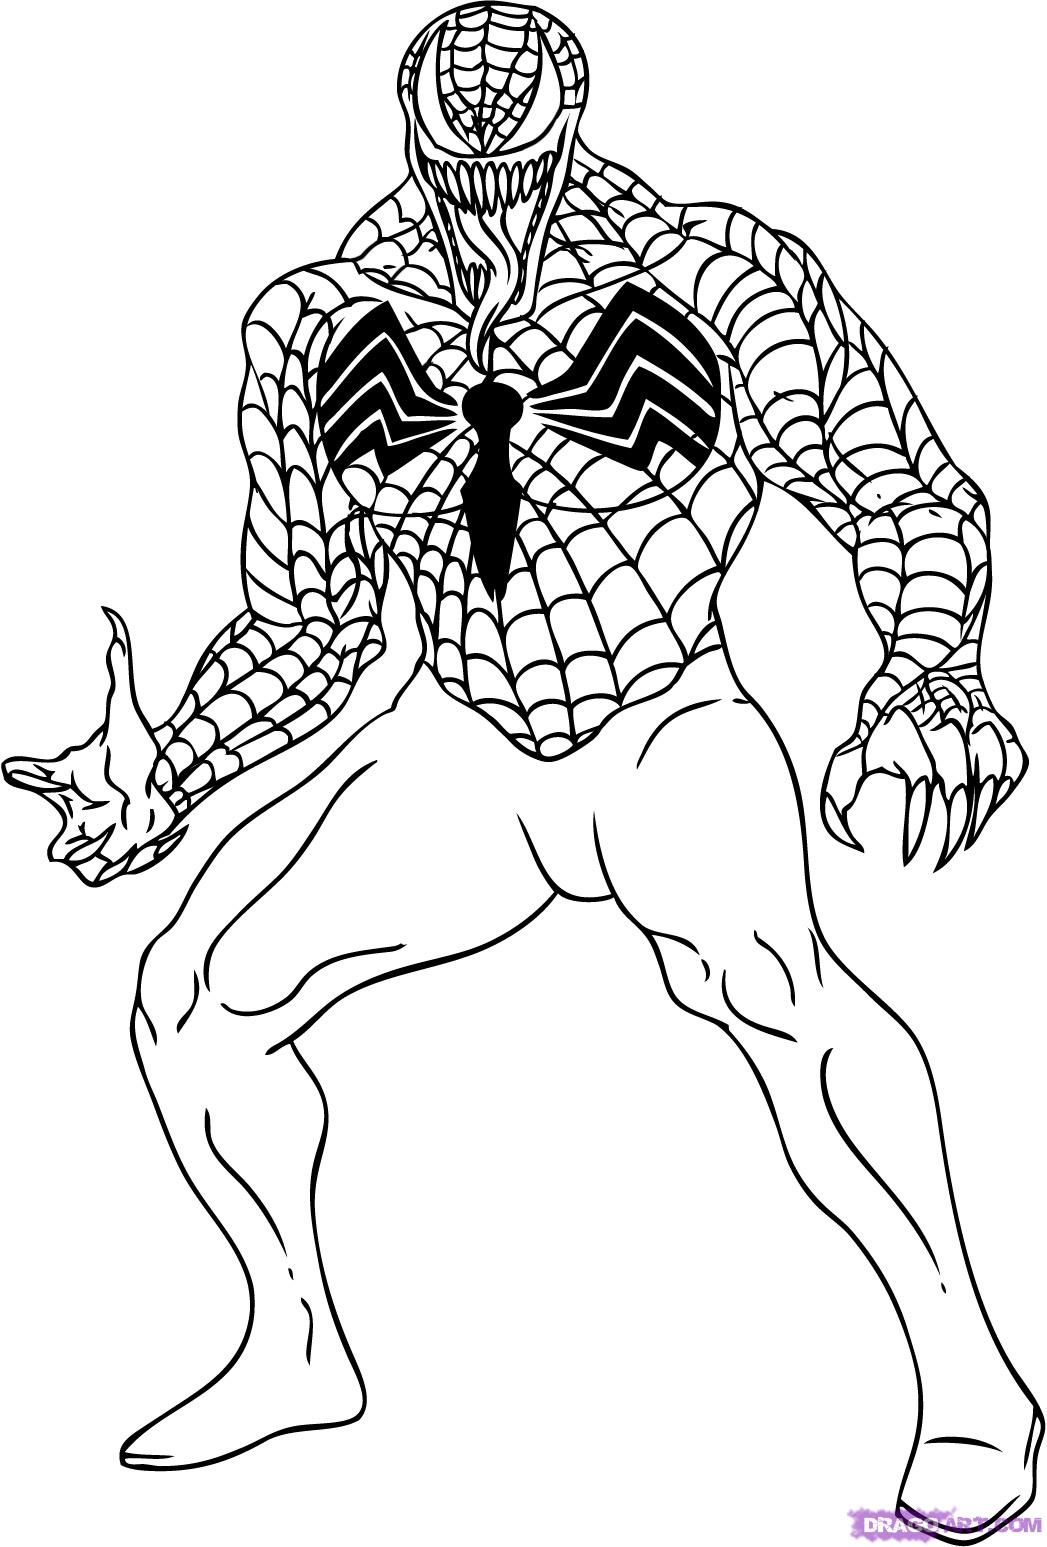 Spiderman Venom Drawing at GetDrawings.com | Free for personal use ...